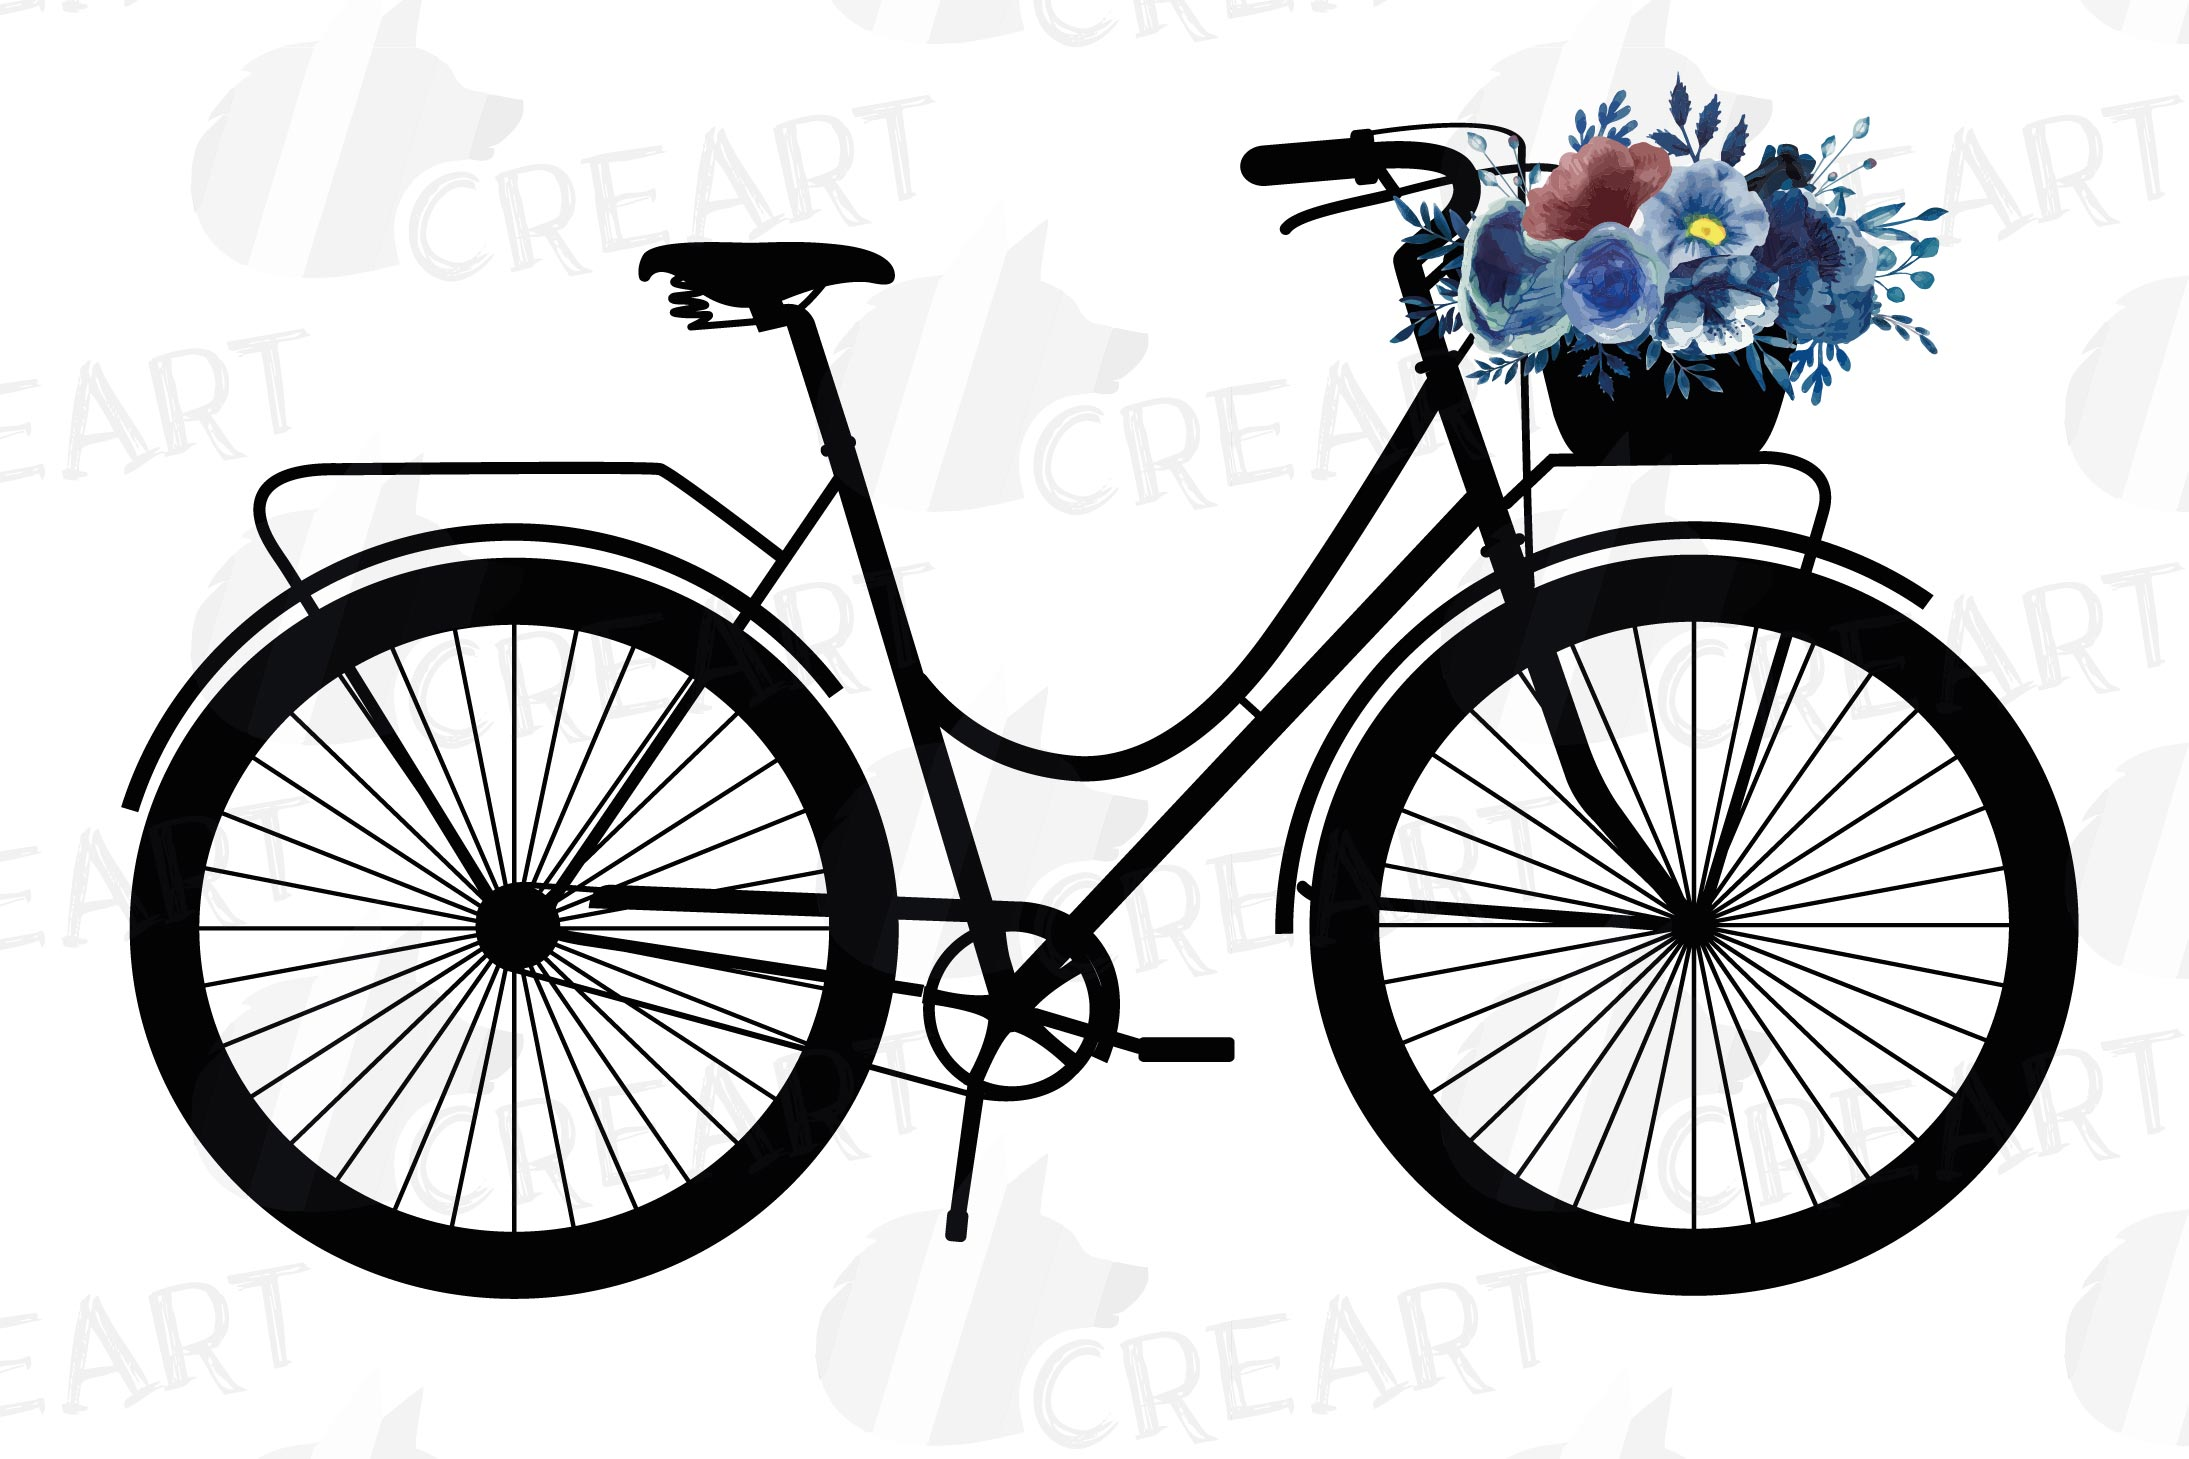 Navy blue floral blush and yellow bicycles clip art pack example image 4